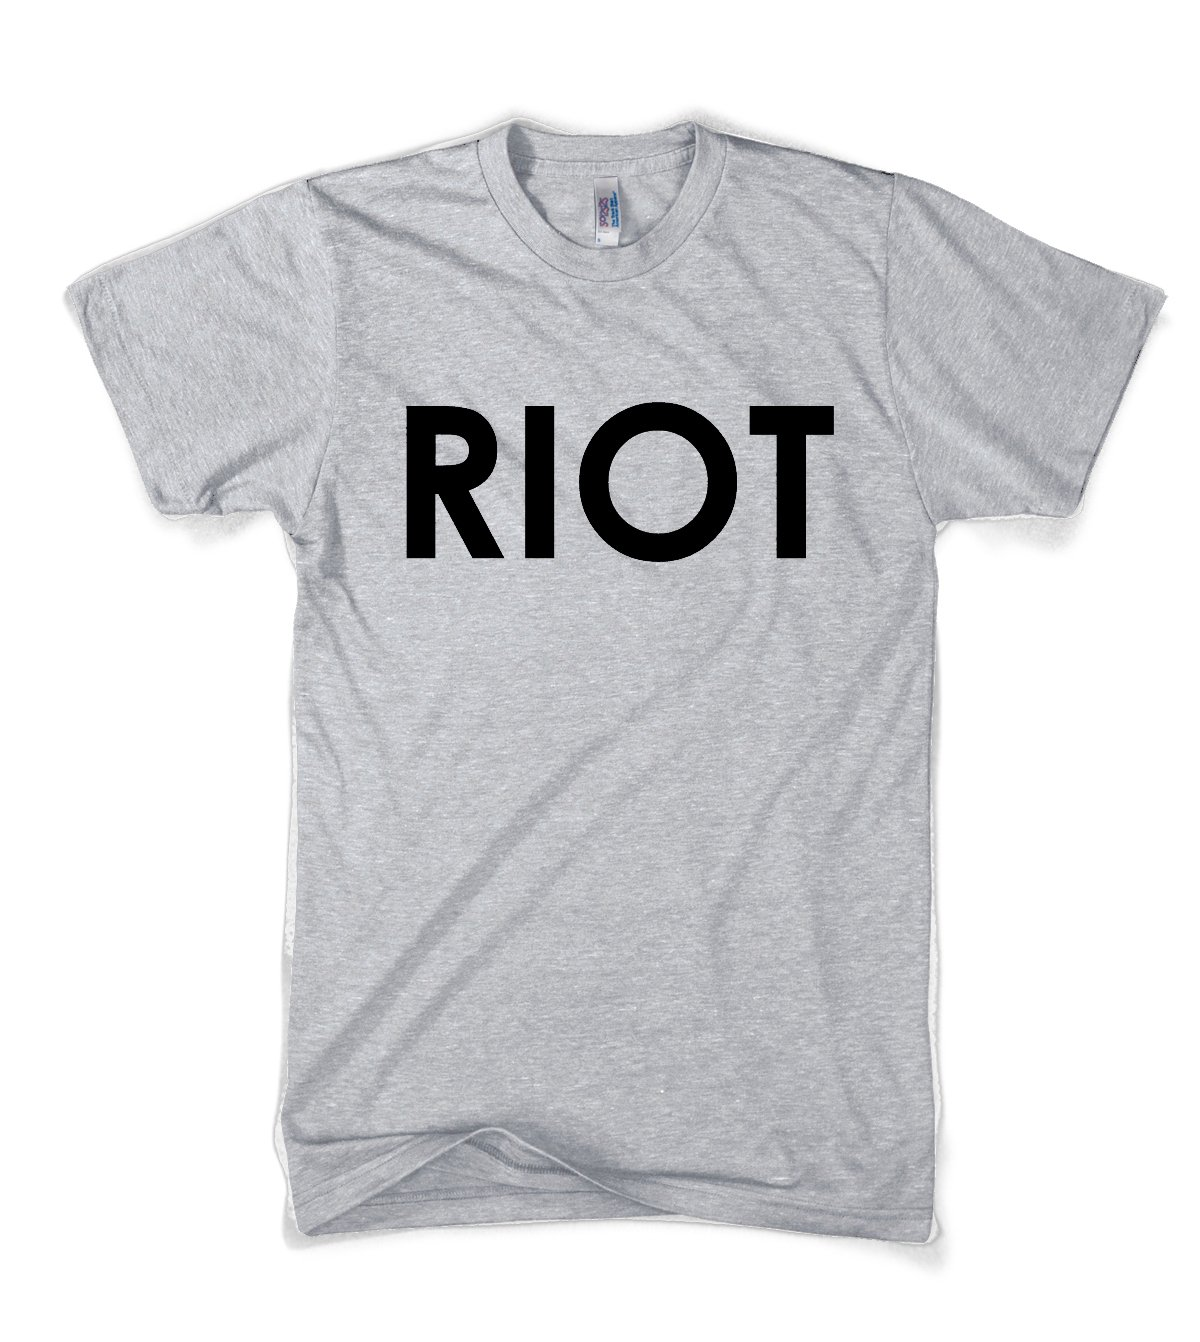 Riot T Shirt Funny Shirts For Political Novelty Tees Humor